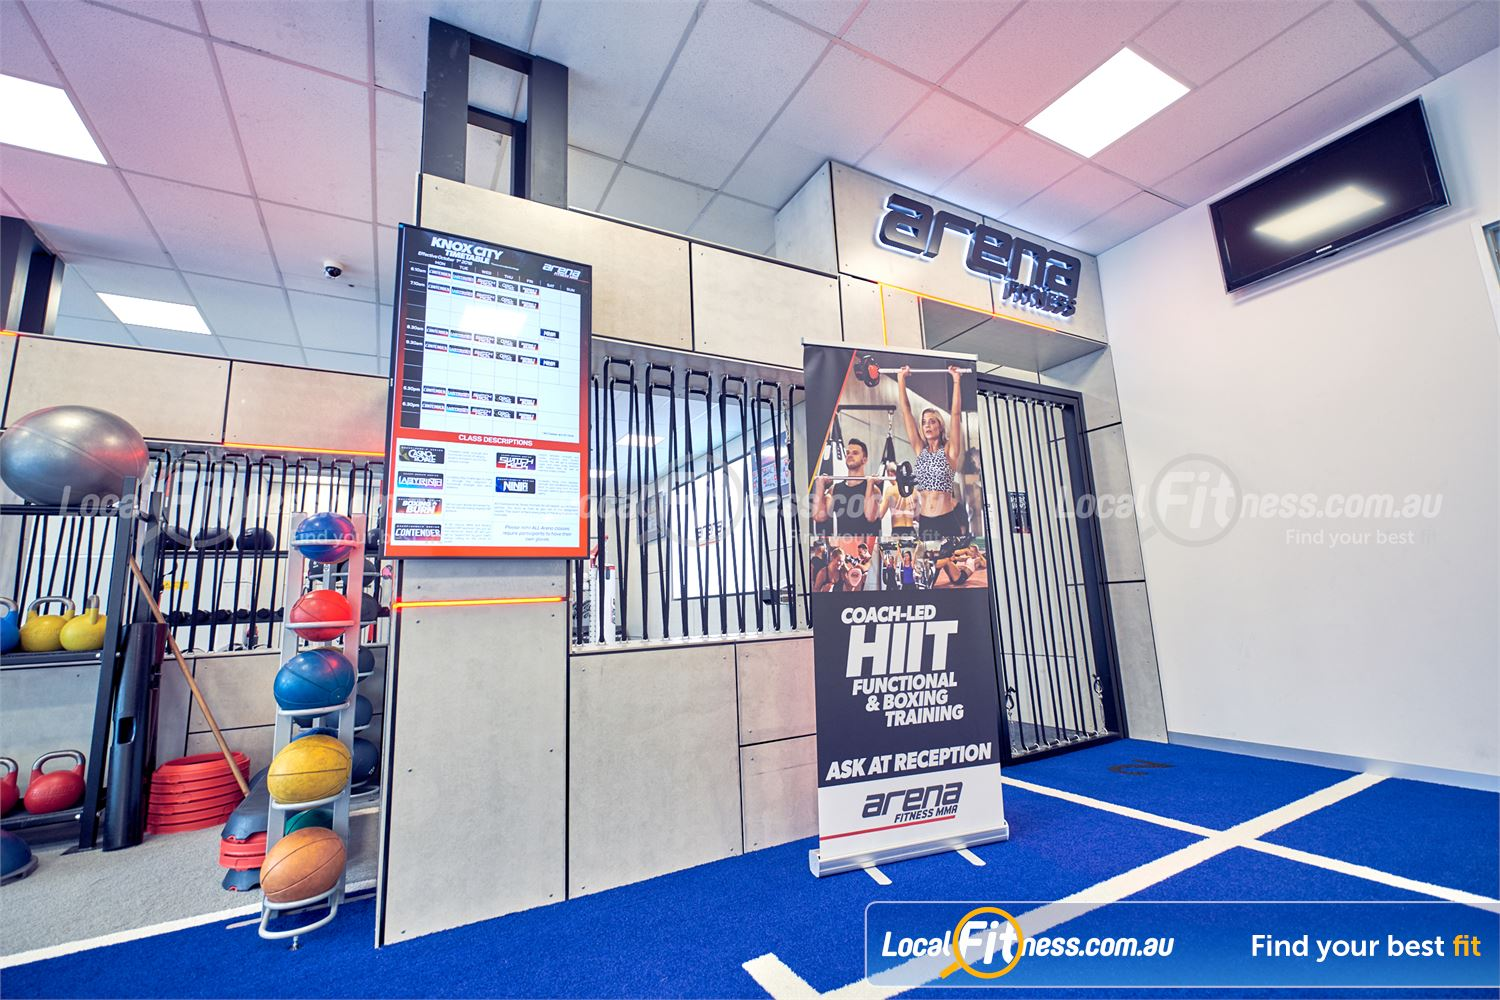 Goodlife Health Clubs Knox City Wantirna South Welcome to Arena Fitness MMA at Goodlife Knox City.